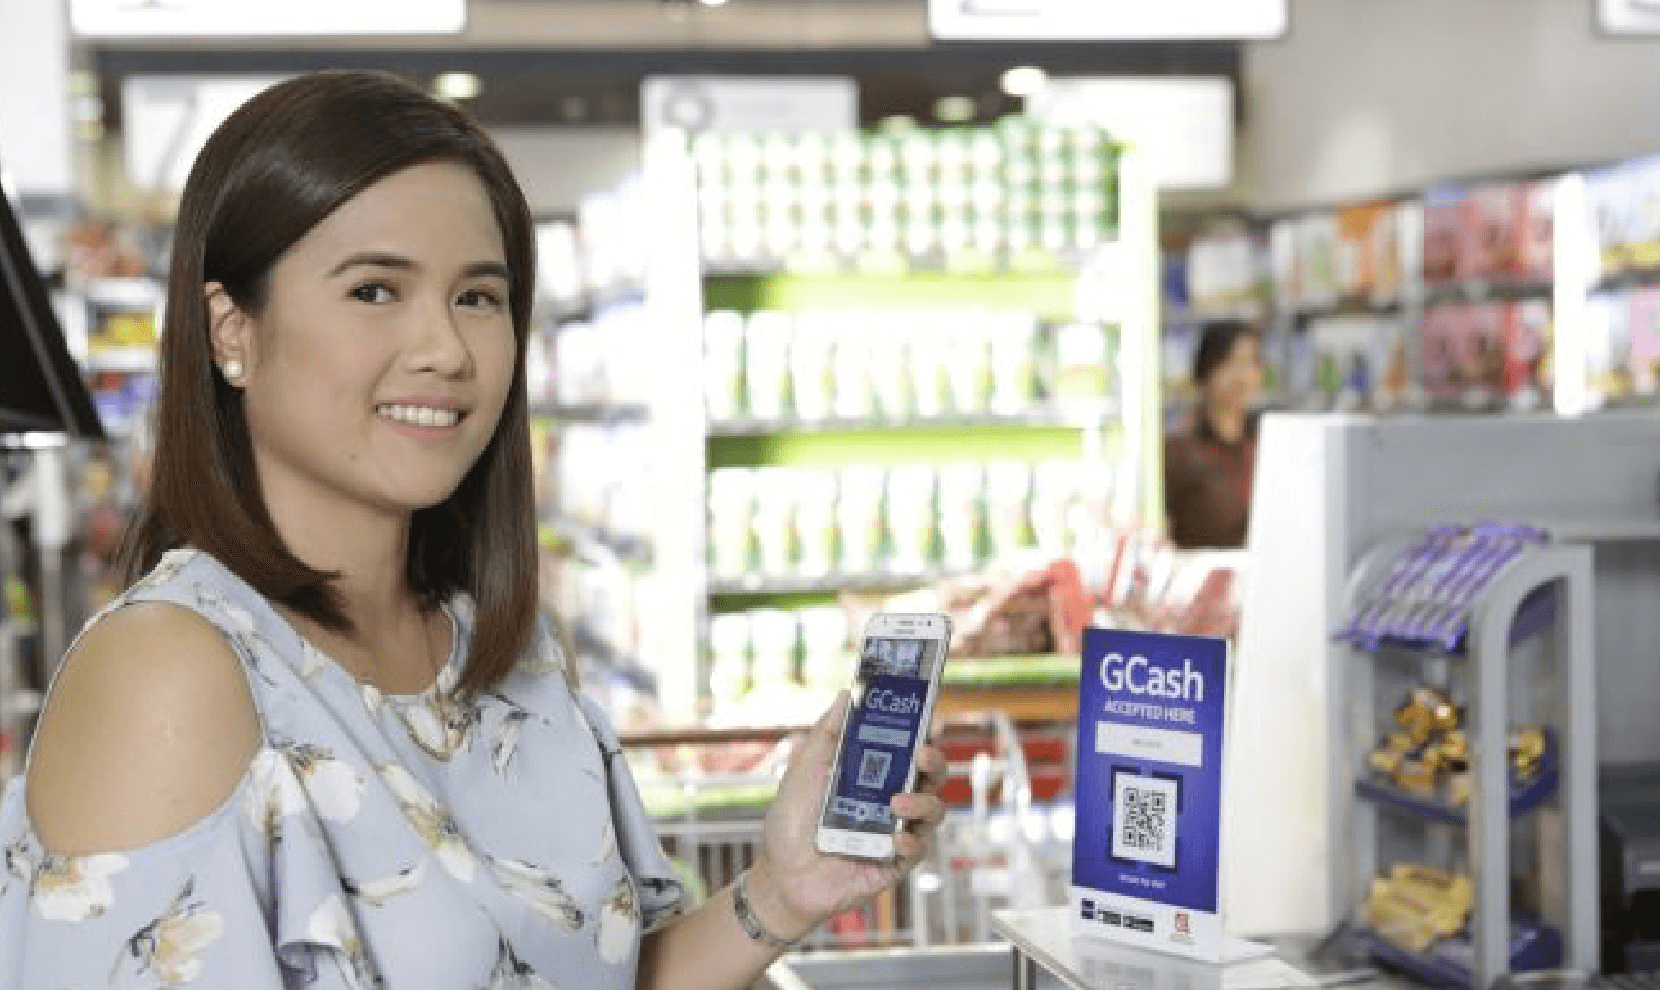 bow-wave-capital-invests-175-million-to-gcash-operator-in-the-philippines